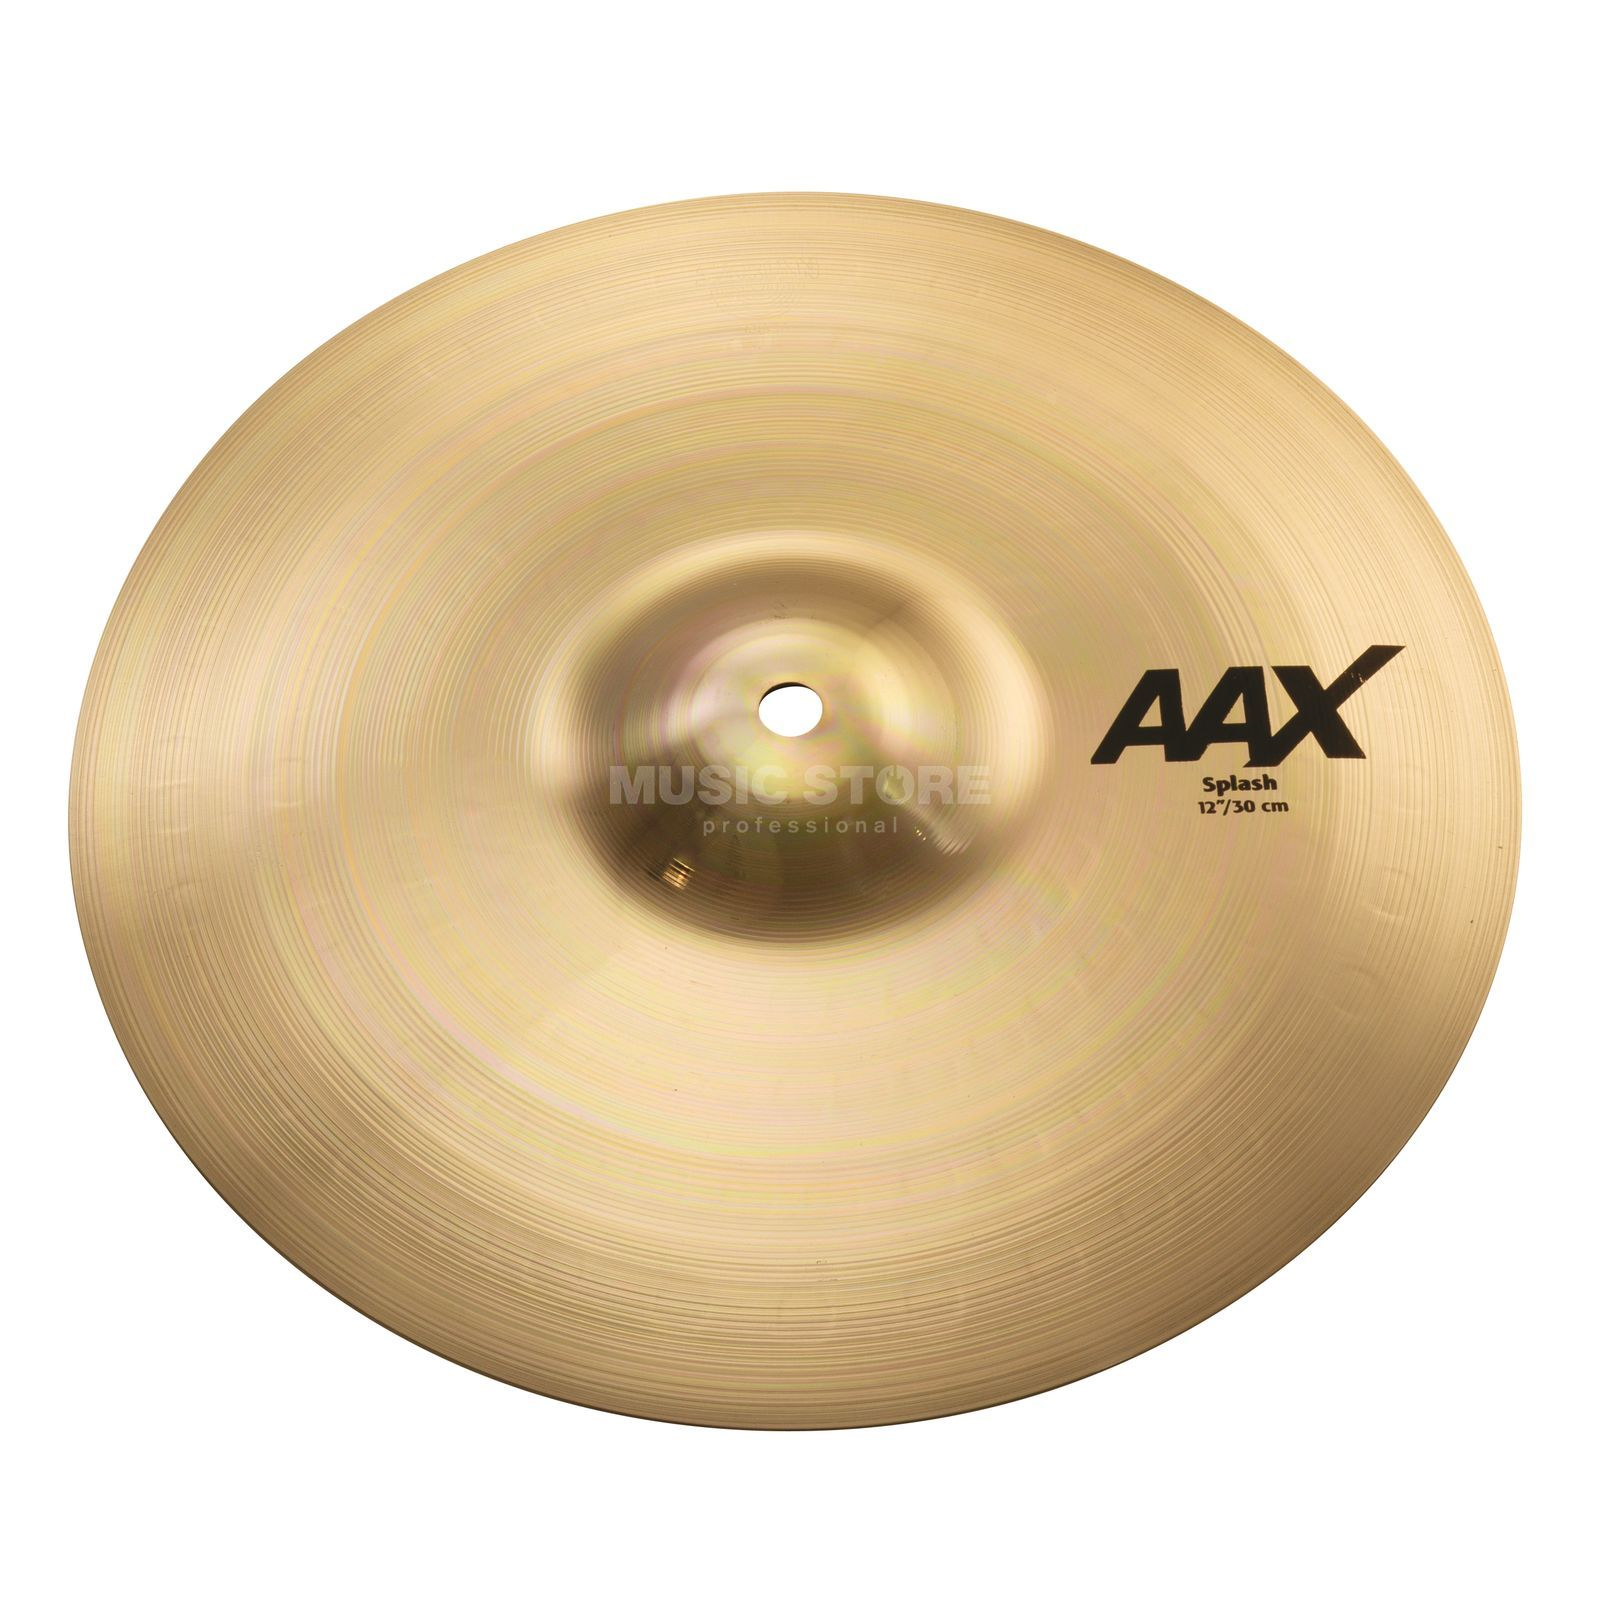 "Sabian AAX Splash 12"" Brilliant Finish Immagine prodotto"